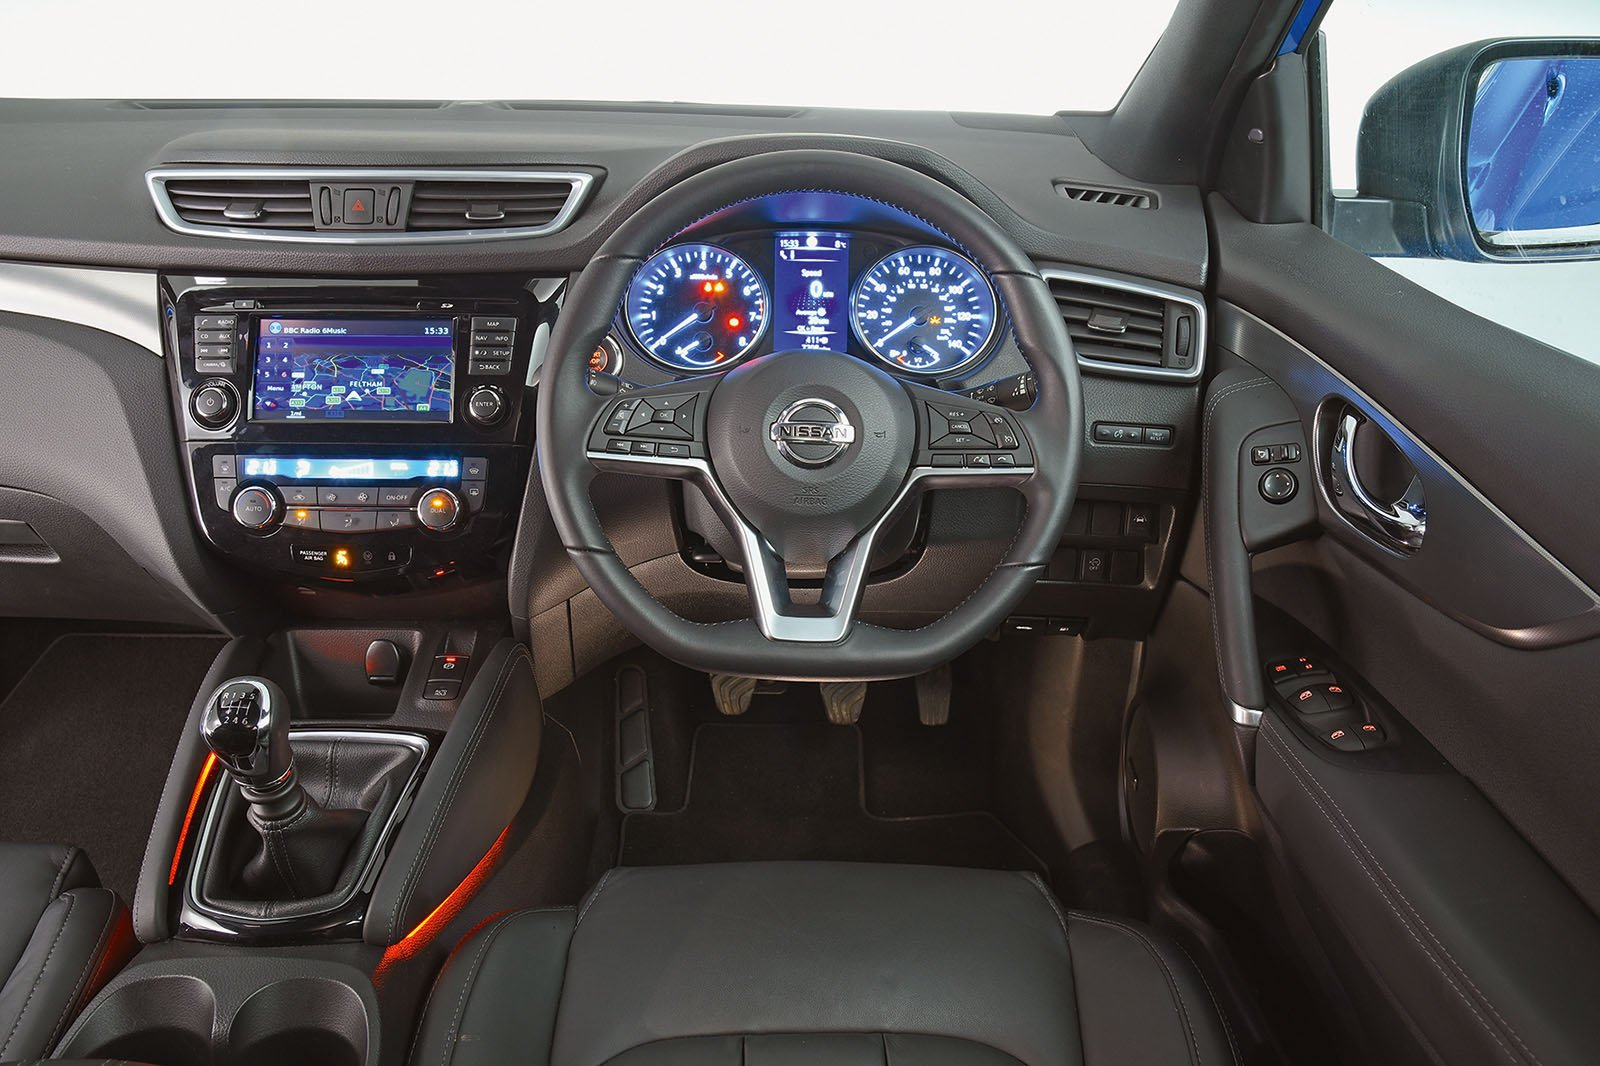 Nissan Qashqai 1.3 DiG-T N-Connecta - interior